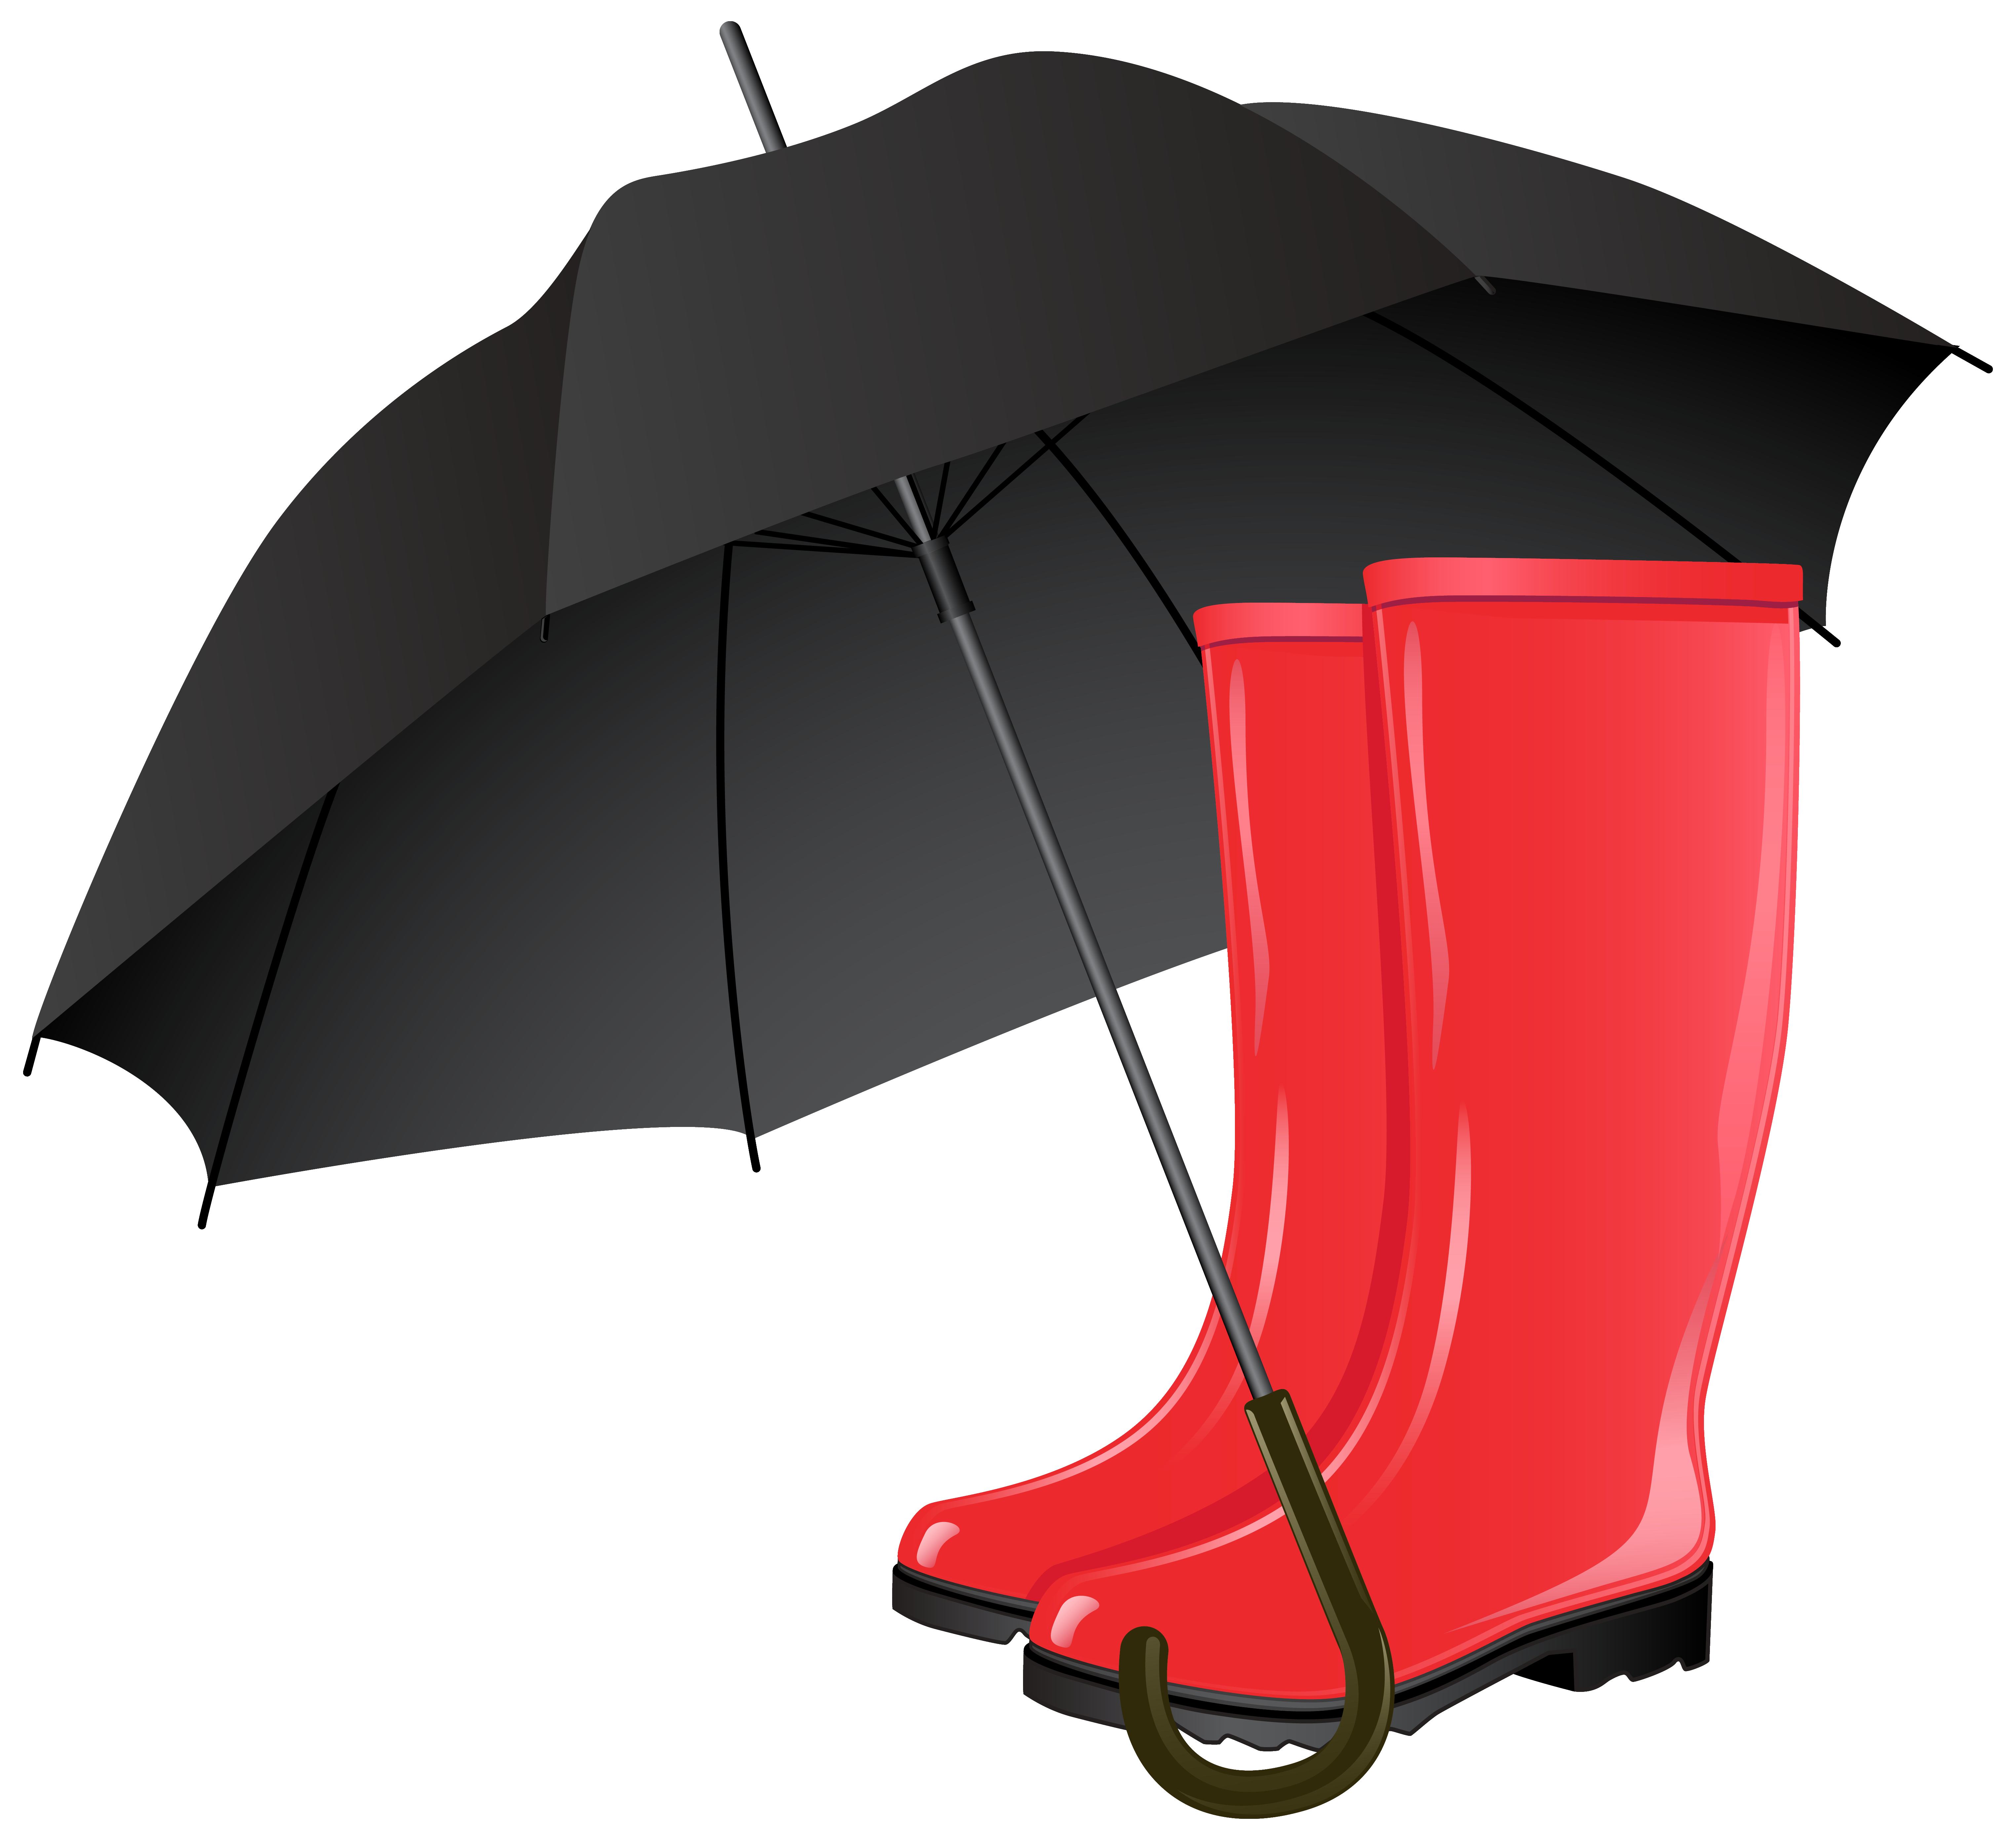 Rubber boots and png. Watermelon clipart umbrella